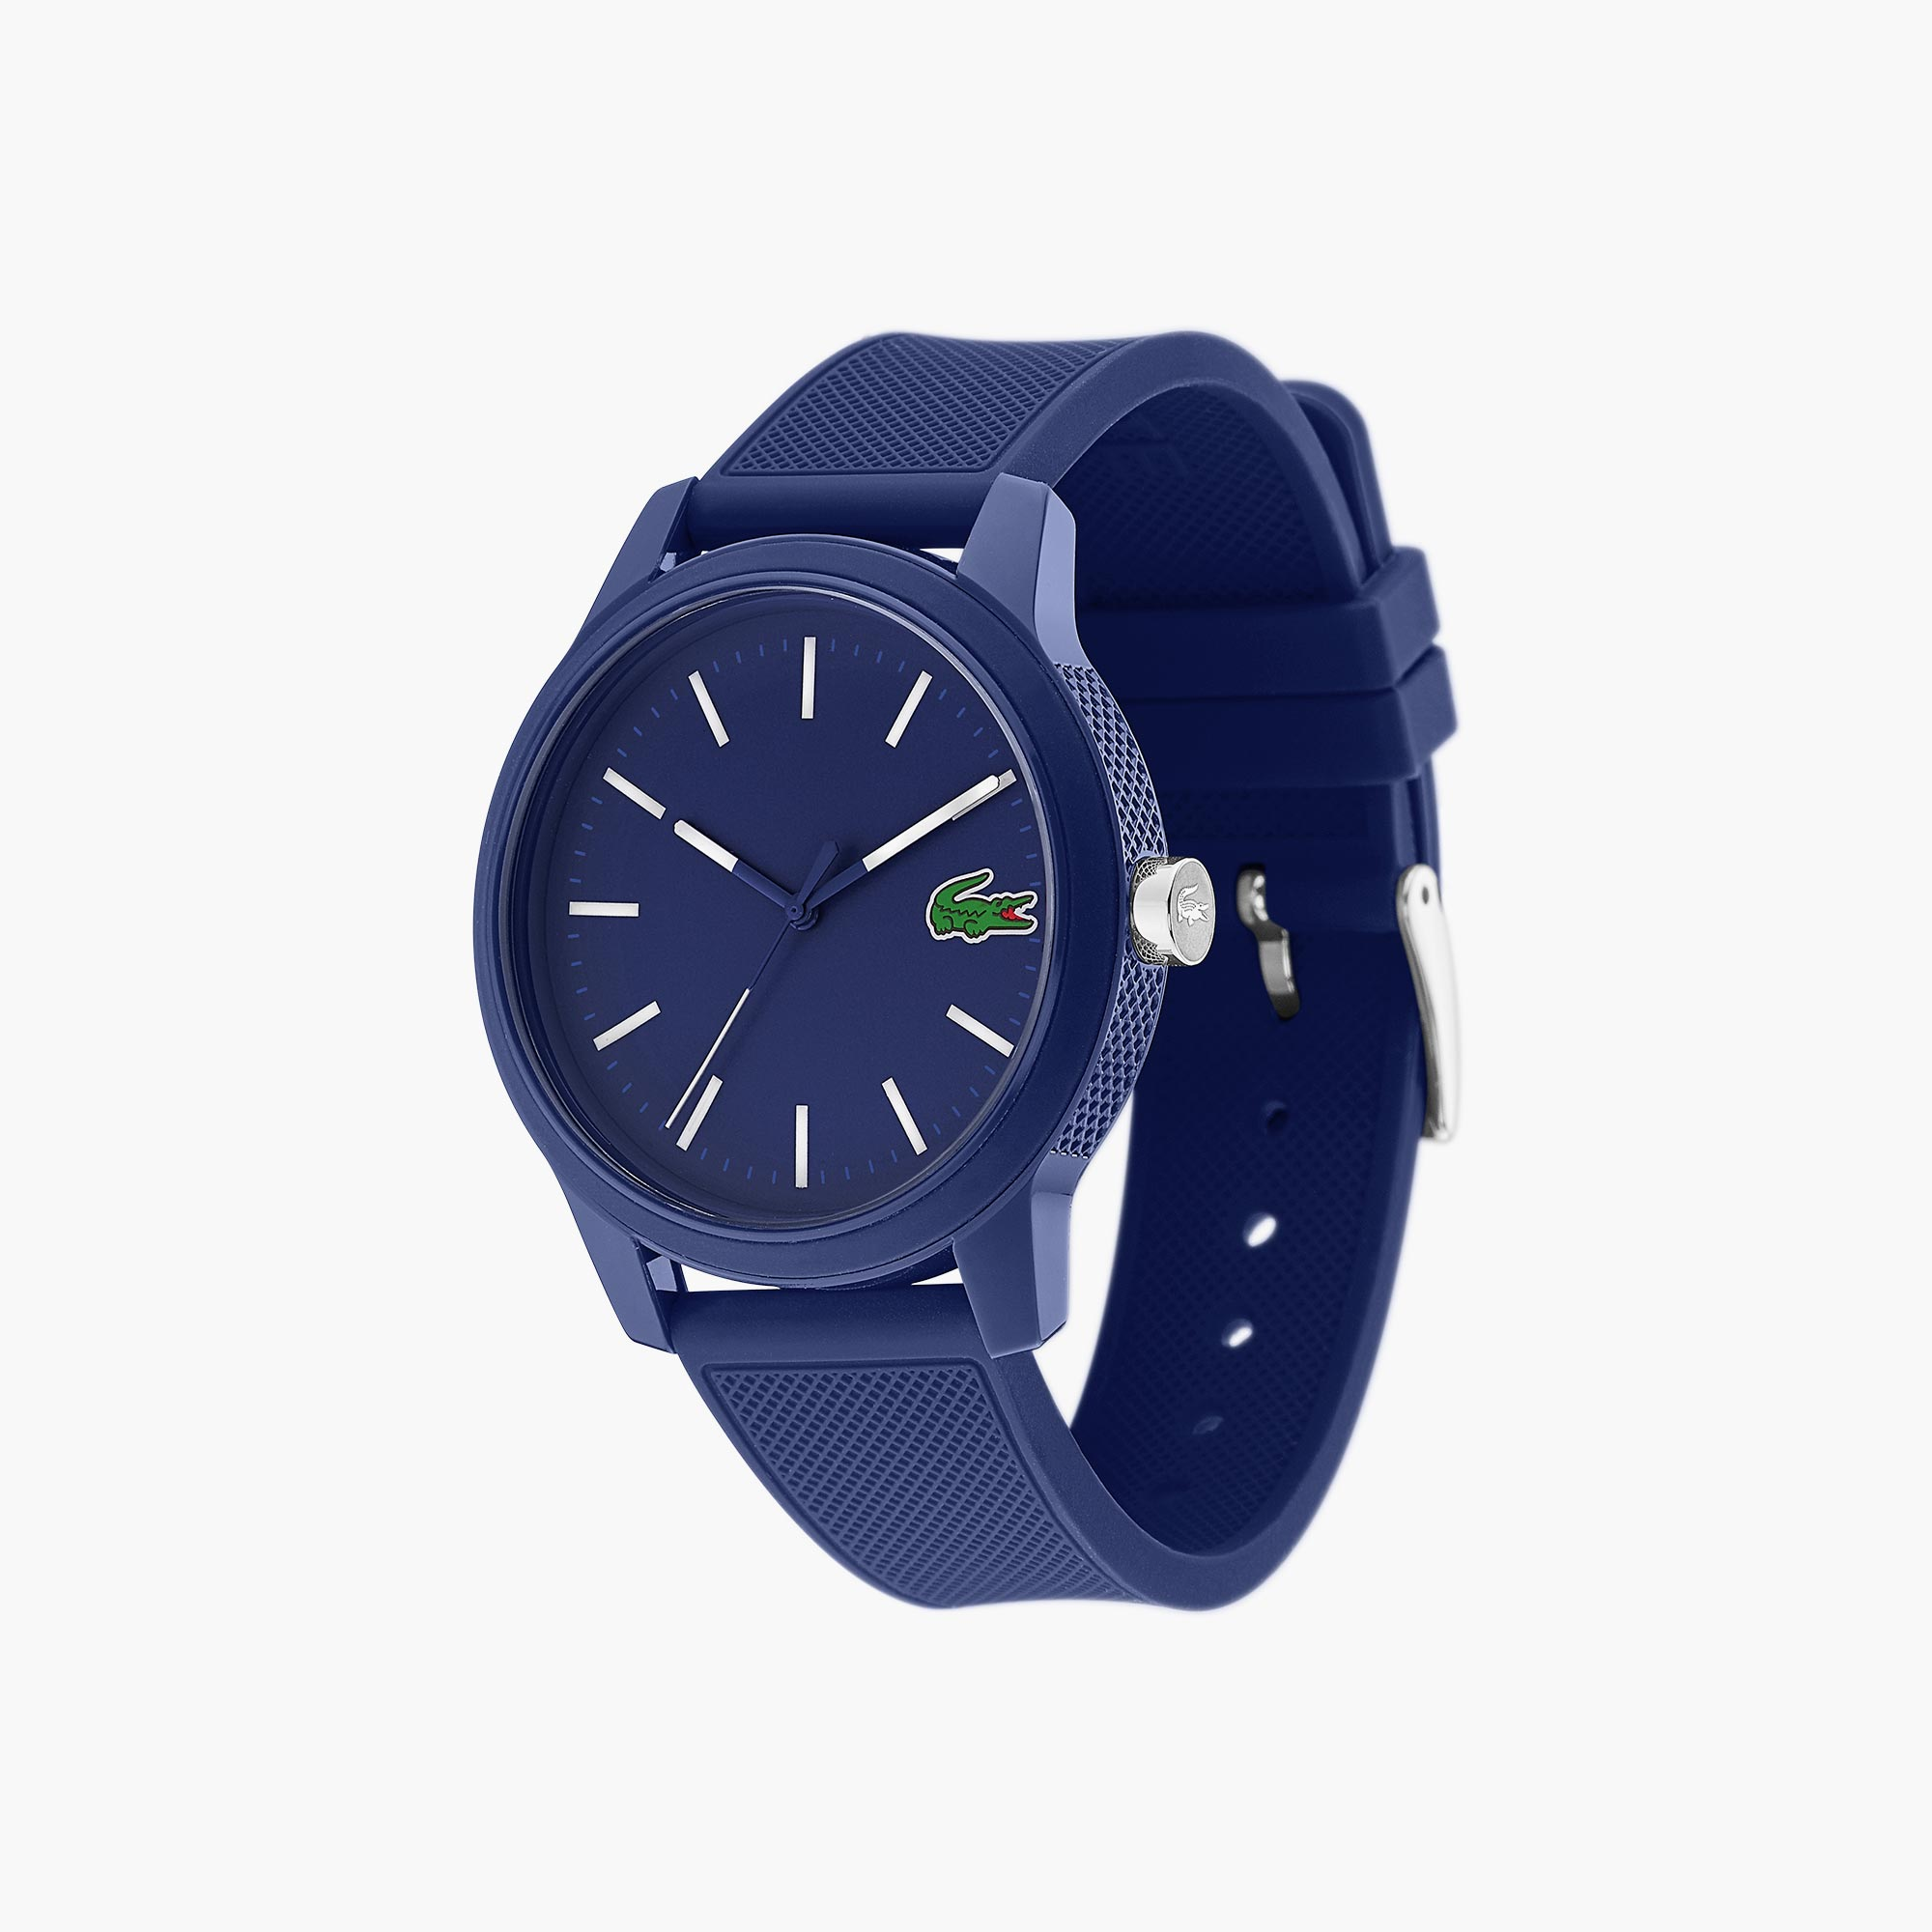 411c00c78f Men s Lacoste 12.12 Watch with Blue Silicone Strap